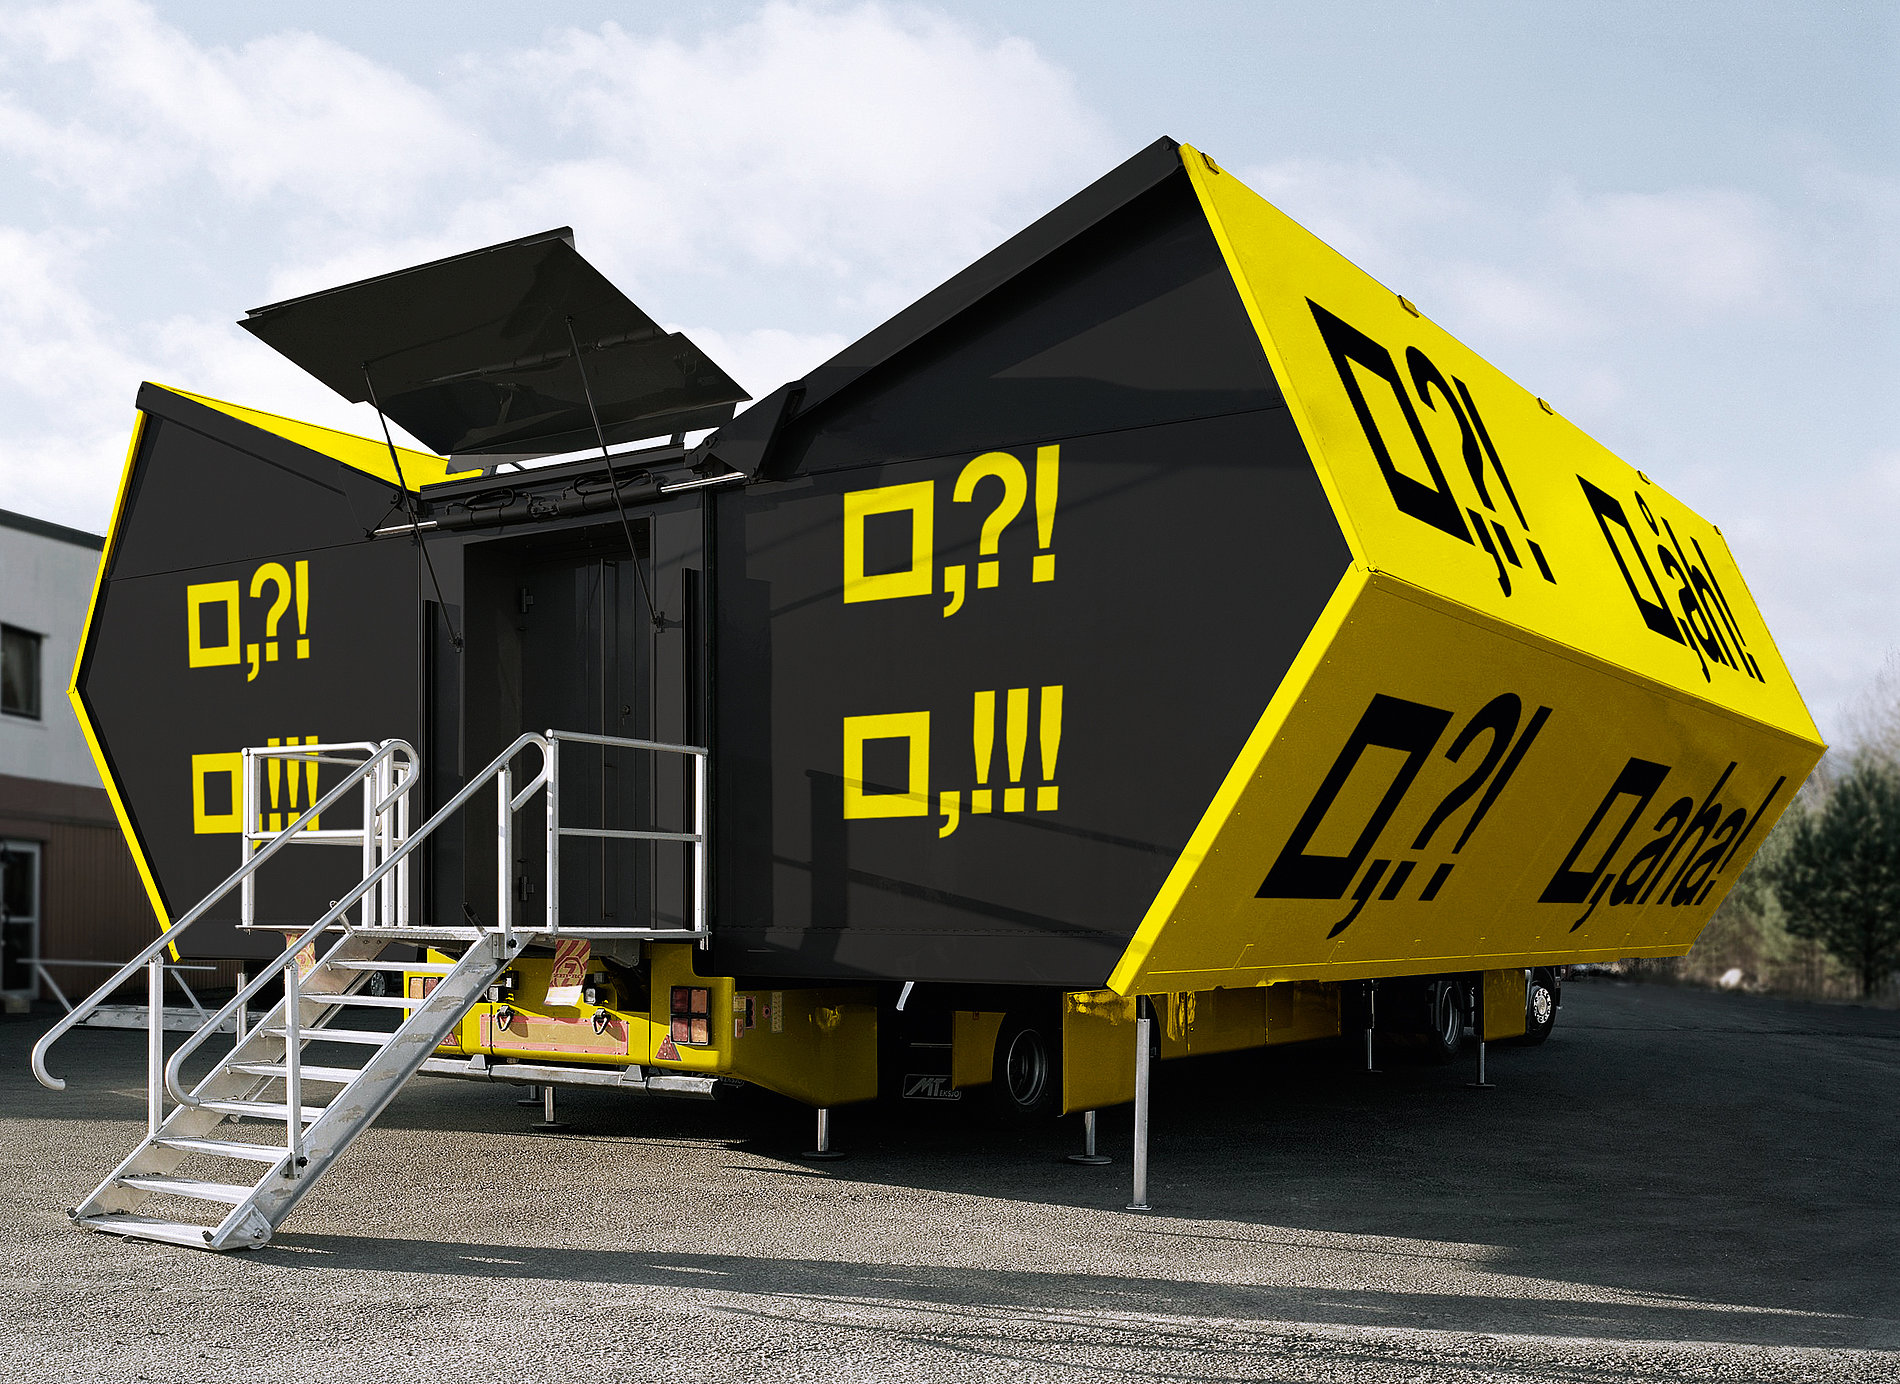 The Mobile Exhibition Lab | Red Dot Design Award